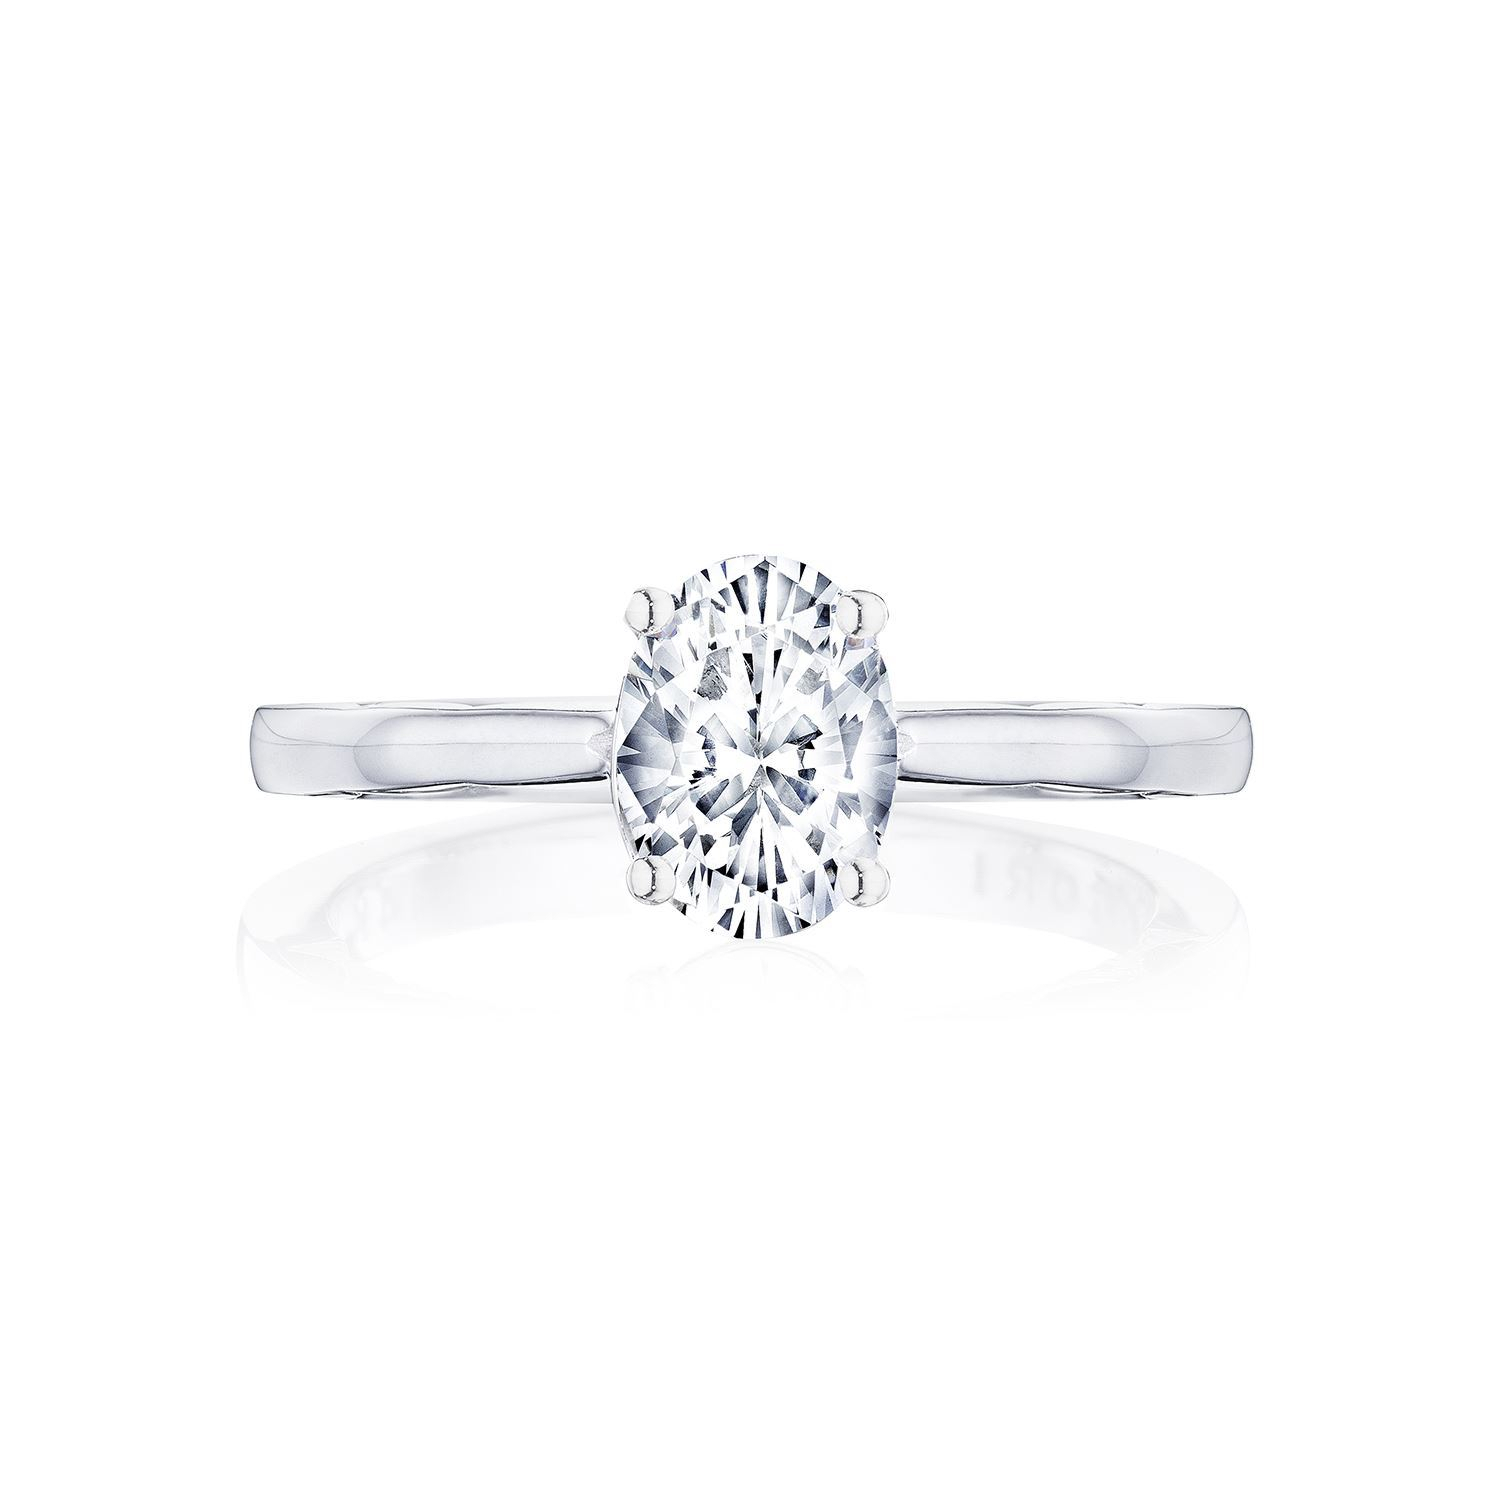 Tacori Coastal Crescent P100ov Solitaire Engagement Ring Within Oval Shaped Engagement Rings (View 13 of 25)